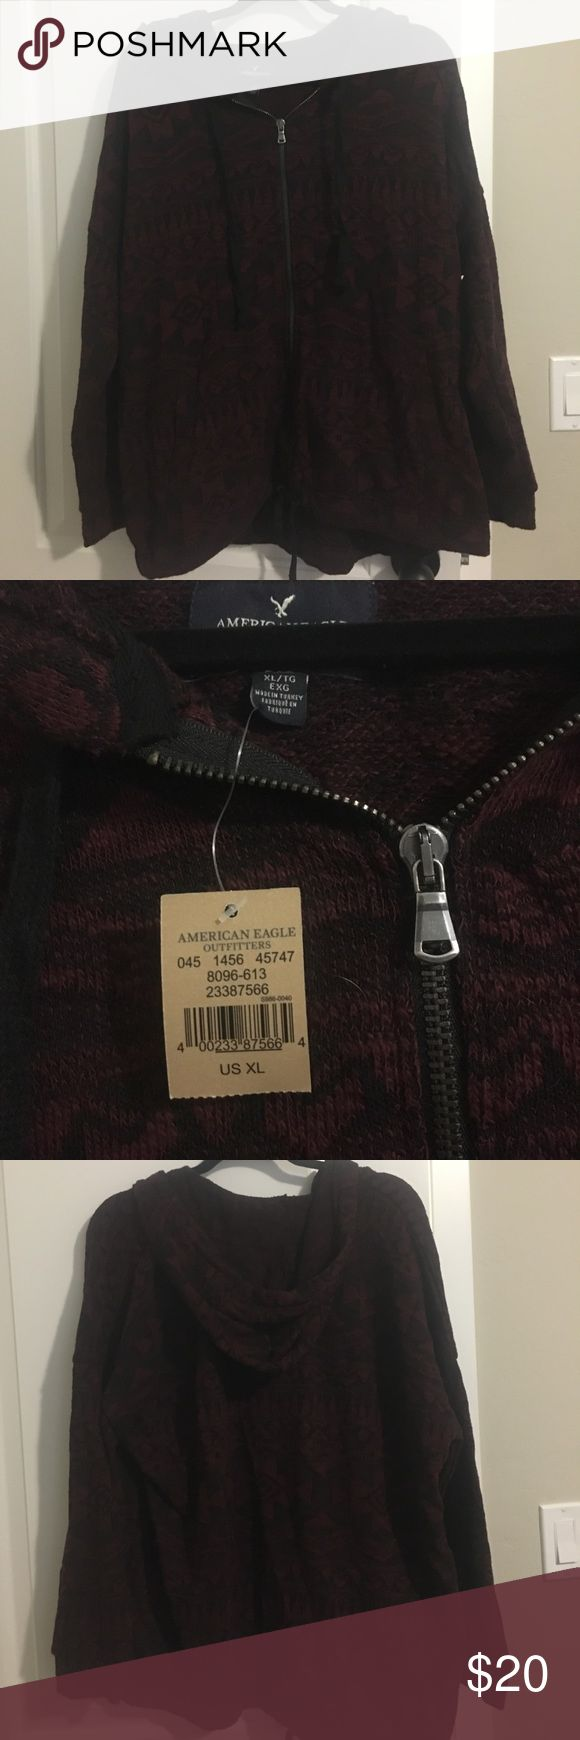 NWT AE zip up hooded sweater XL Brand new with tags American Eagle zip-up hooded sweater. Color is darker cranberry and black Aztec type design. Hood and waist both have ties. Cozy and cute! American Eagle Outfitters Sweaters Cardigans